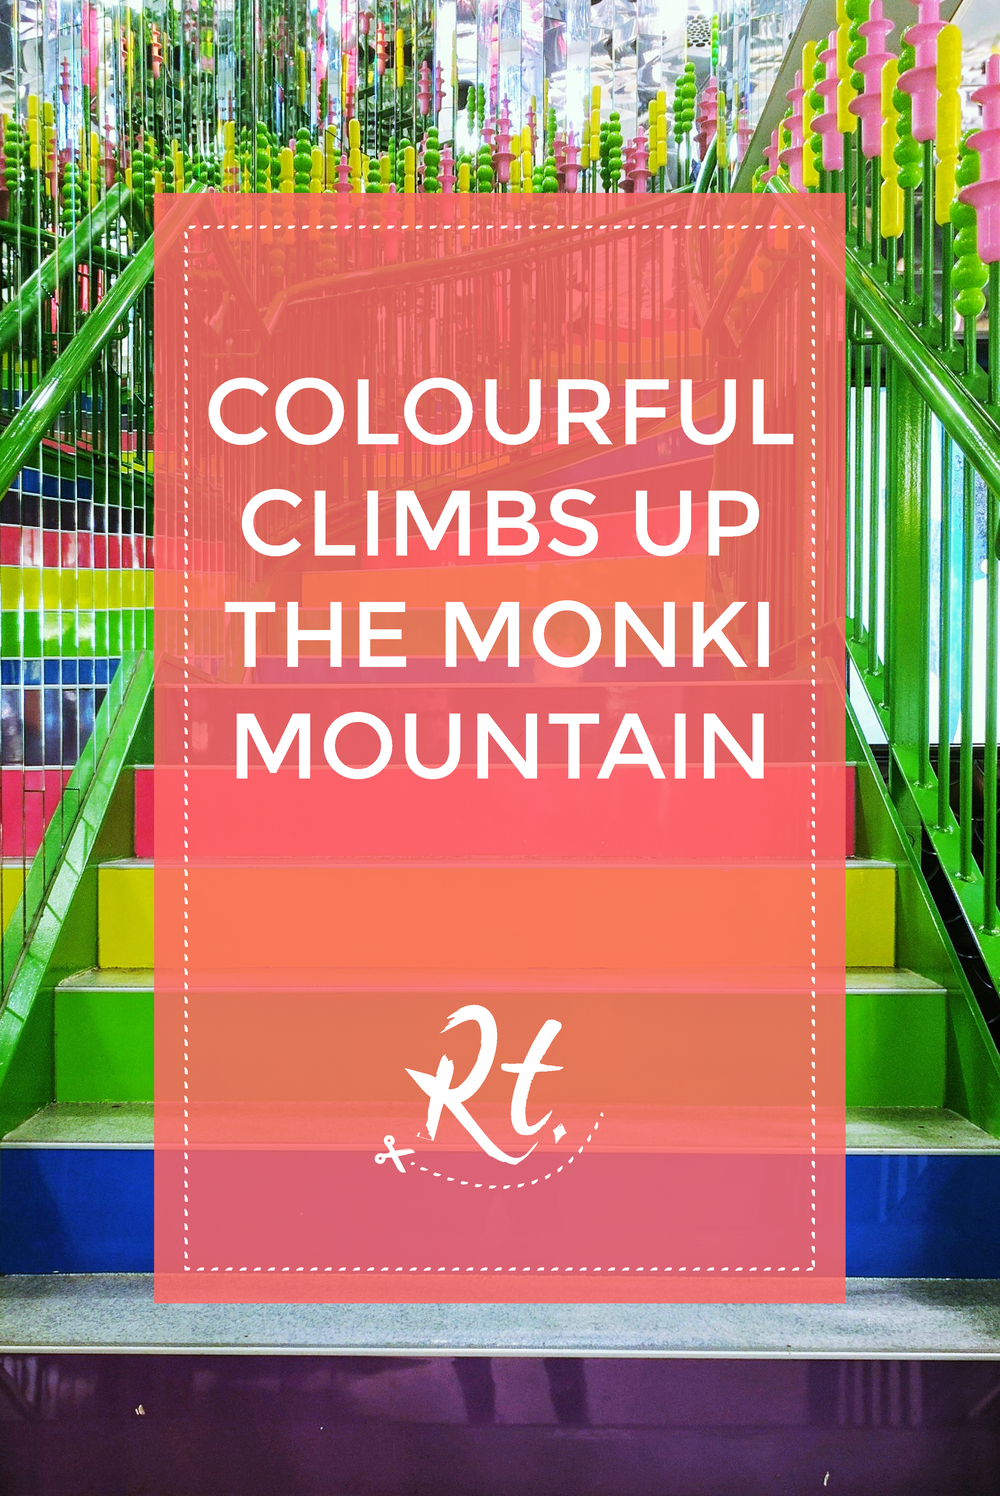 Monki Staircase at Carnaby Street